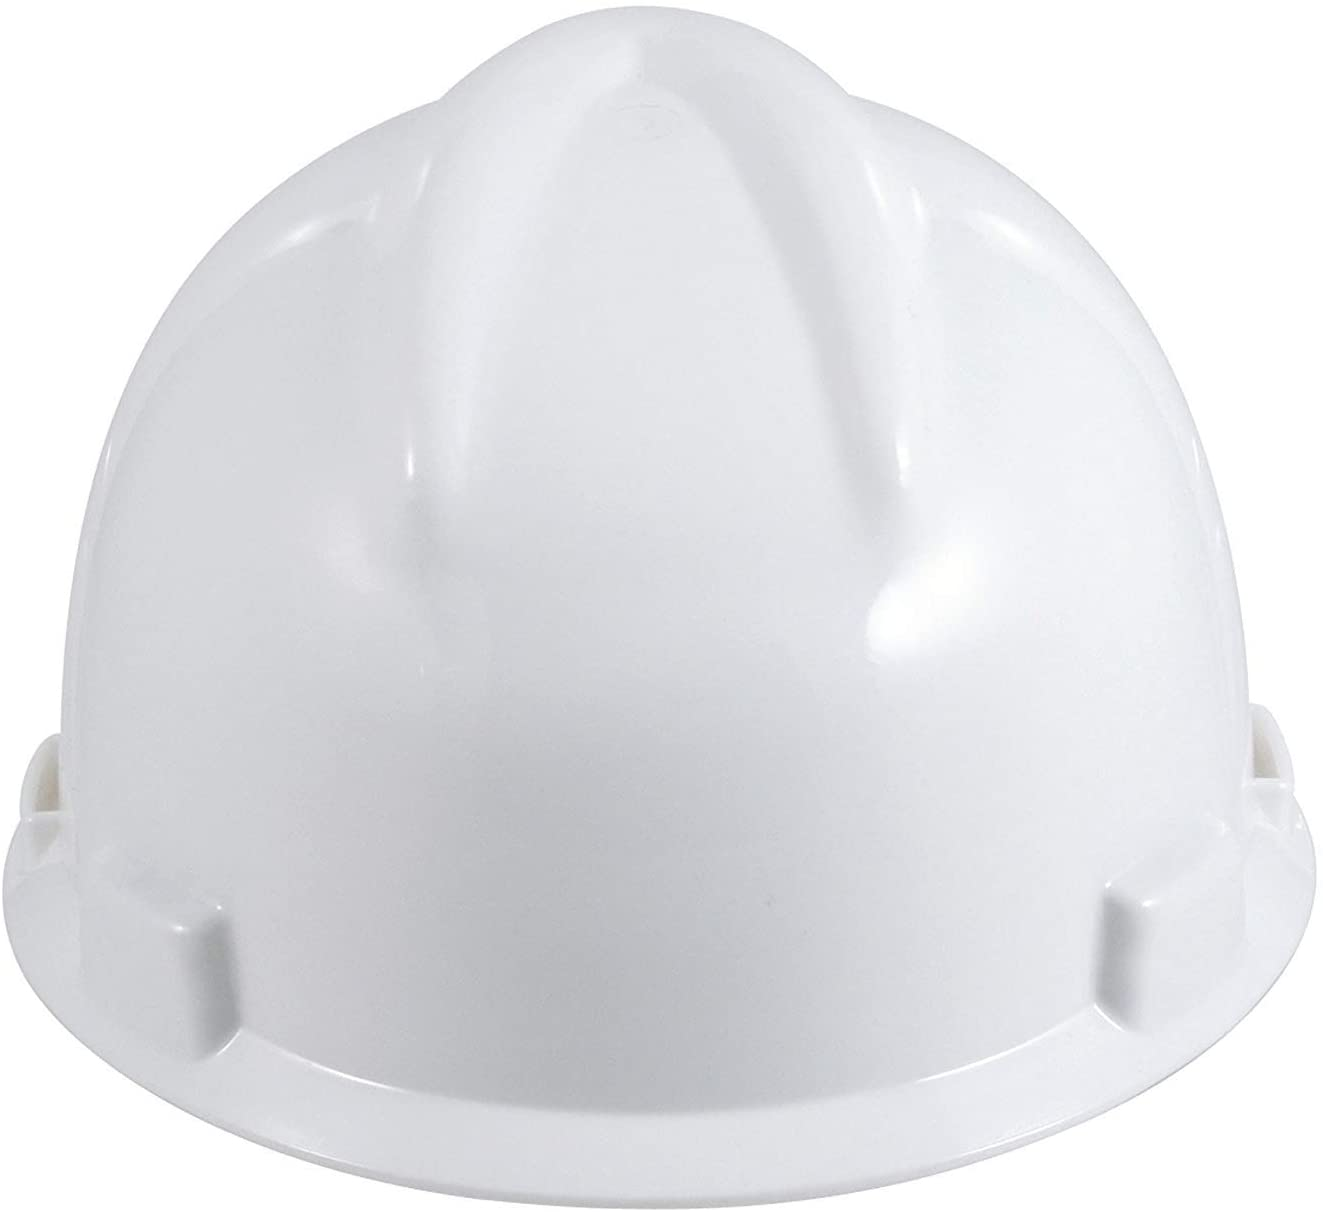 V-Gard Fas-Trac Slotted Protective Cap (White)